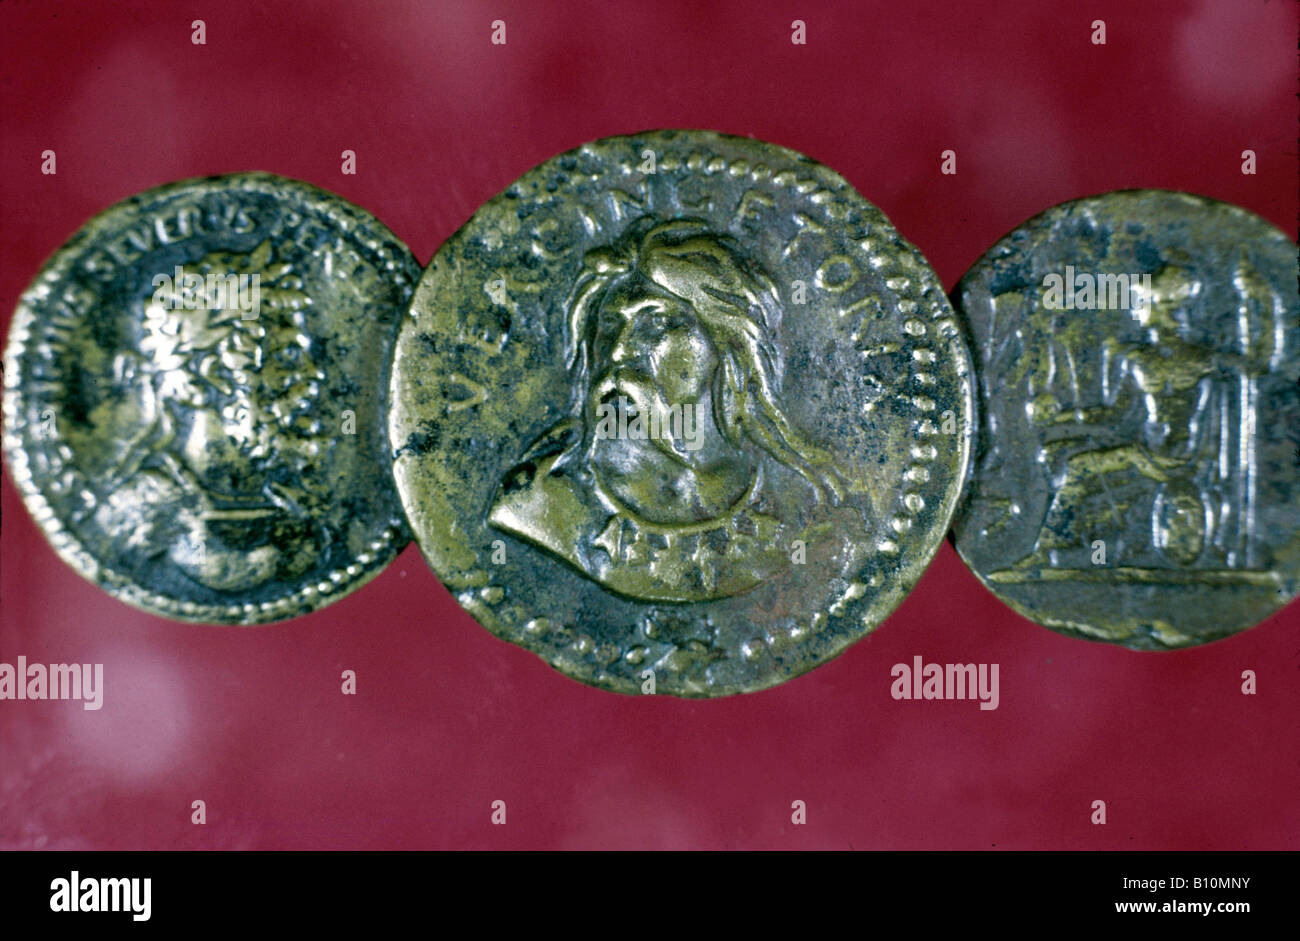 Vercingetorix coin 1st cent BC France Copyright Ancient Art Architecture Collection Ltd - Stock Image